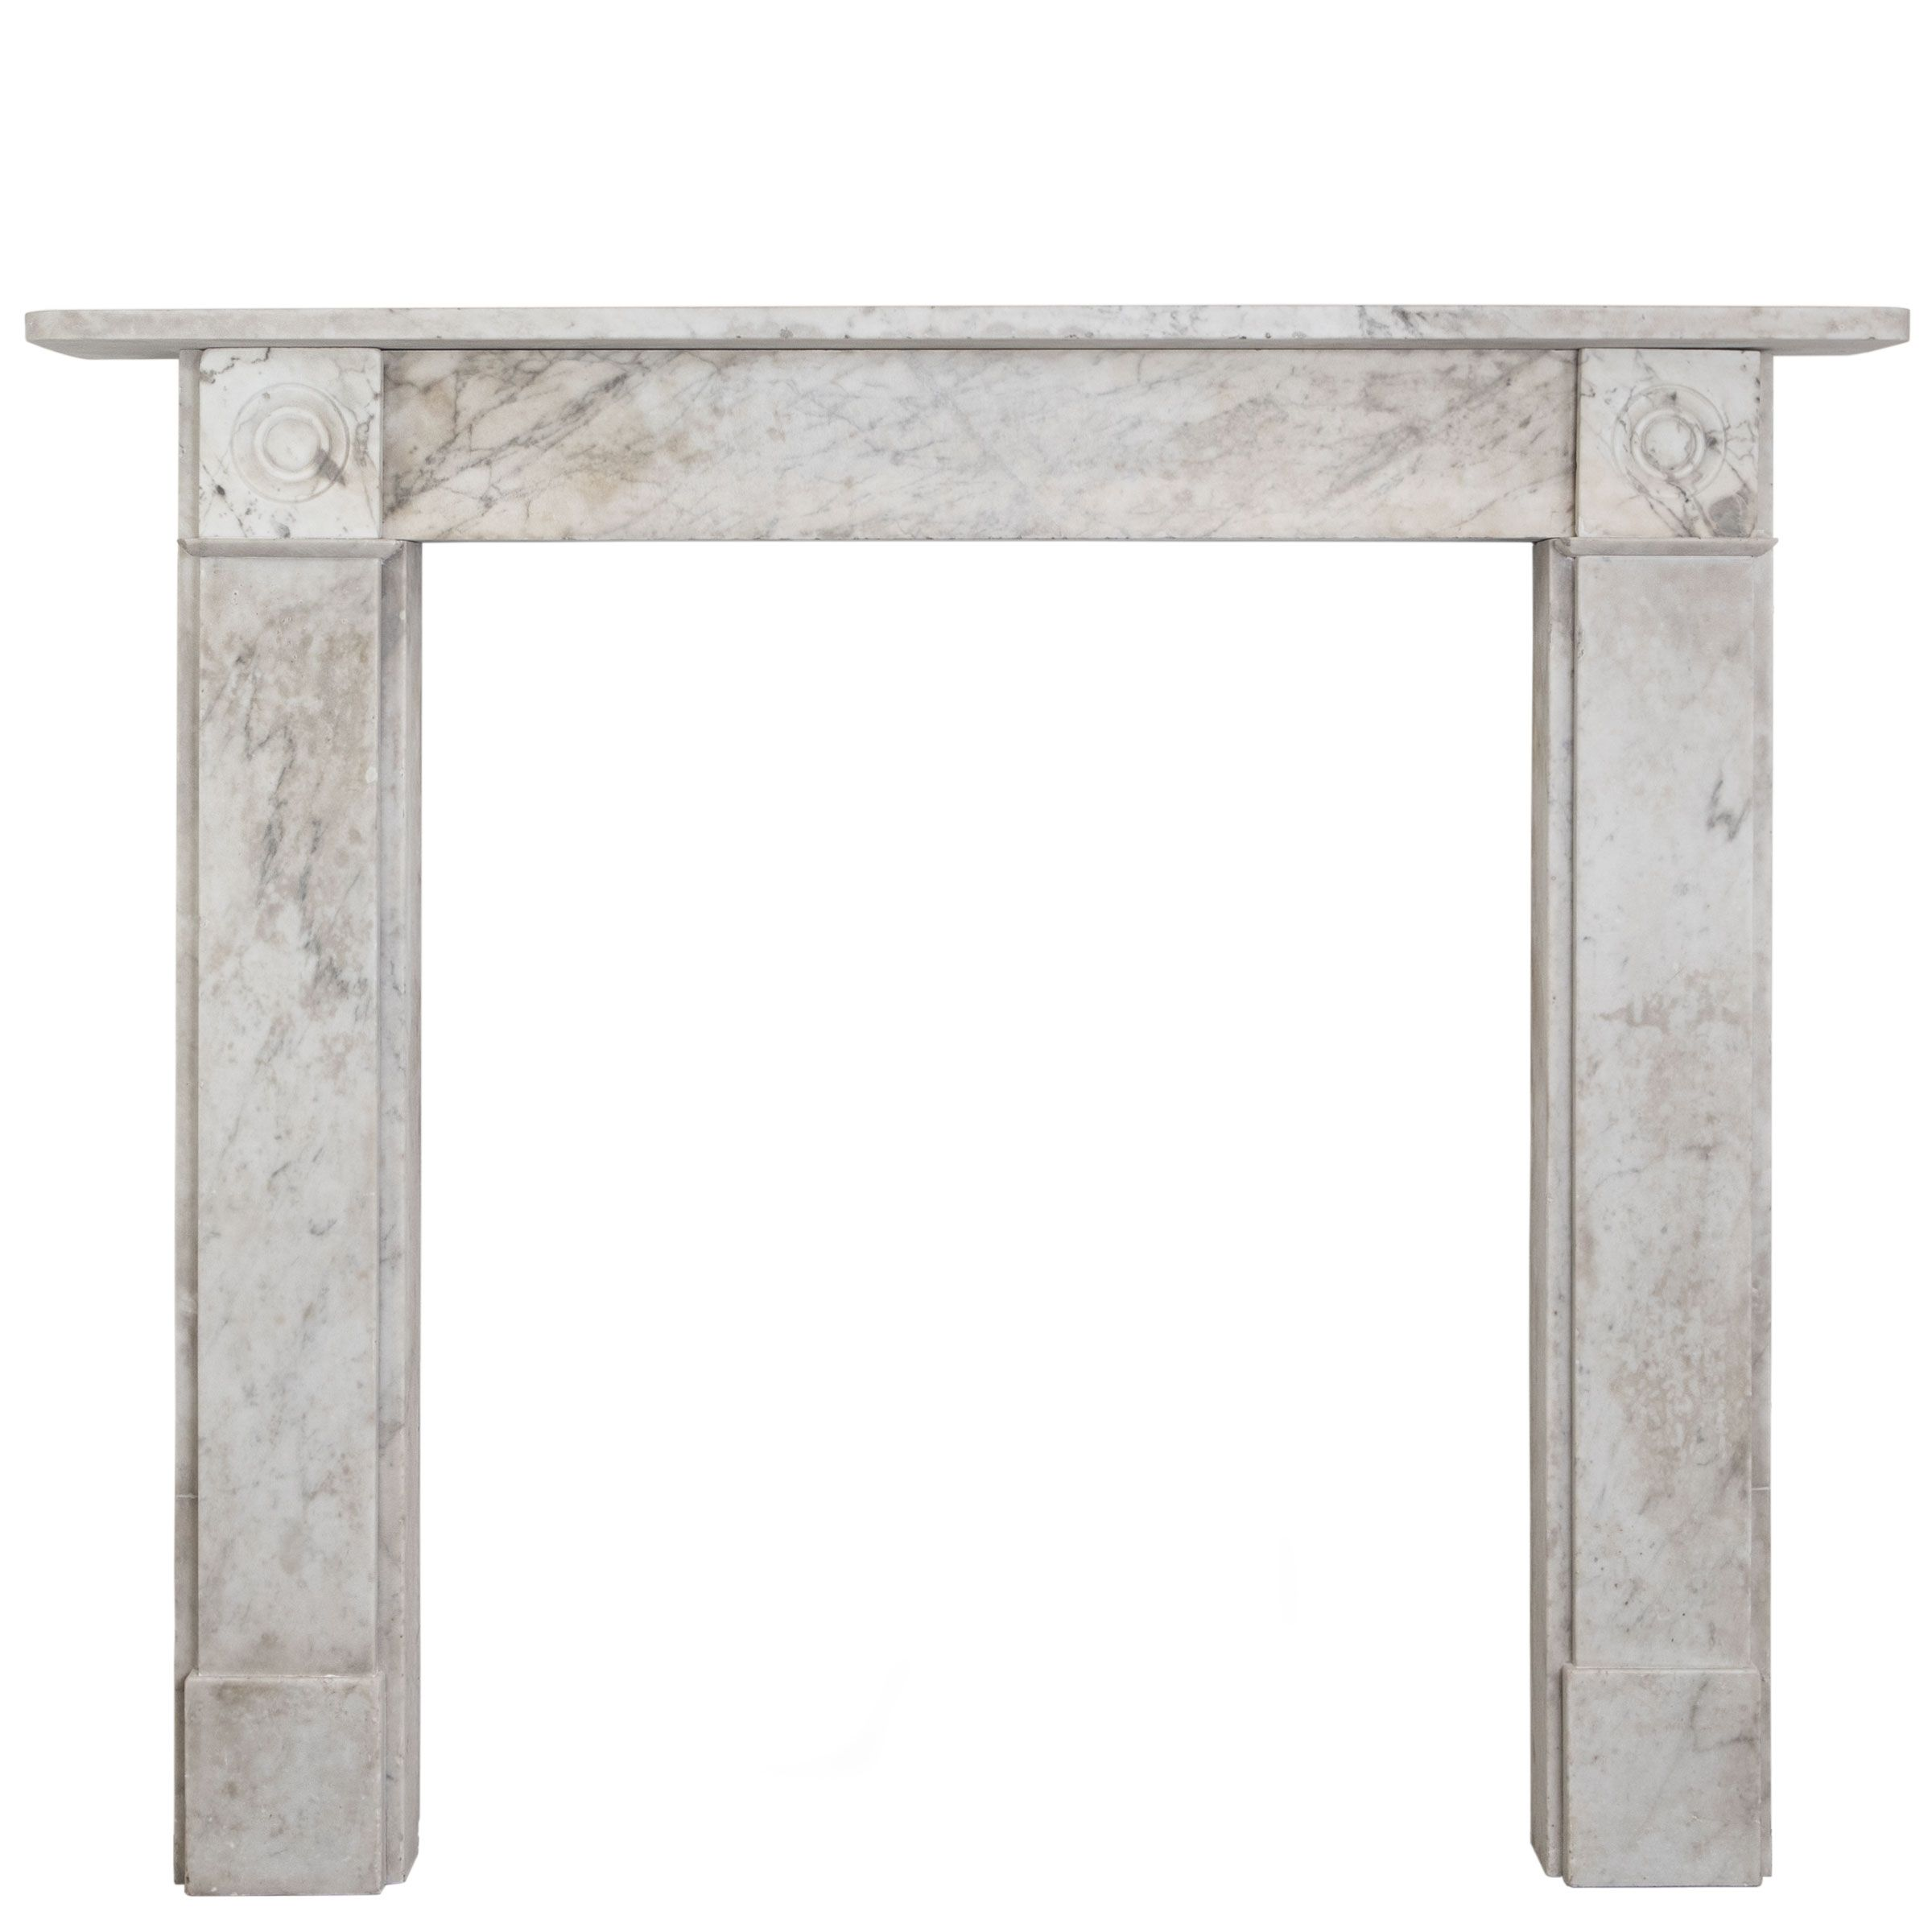 antique georgian carrara bullseye fireplace fire surround